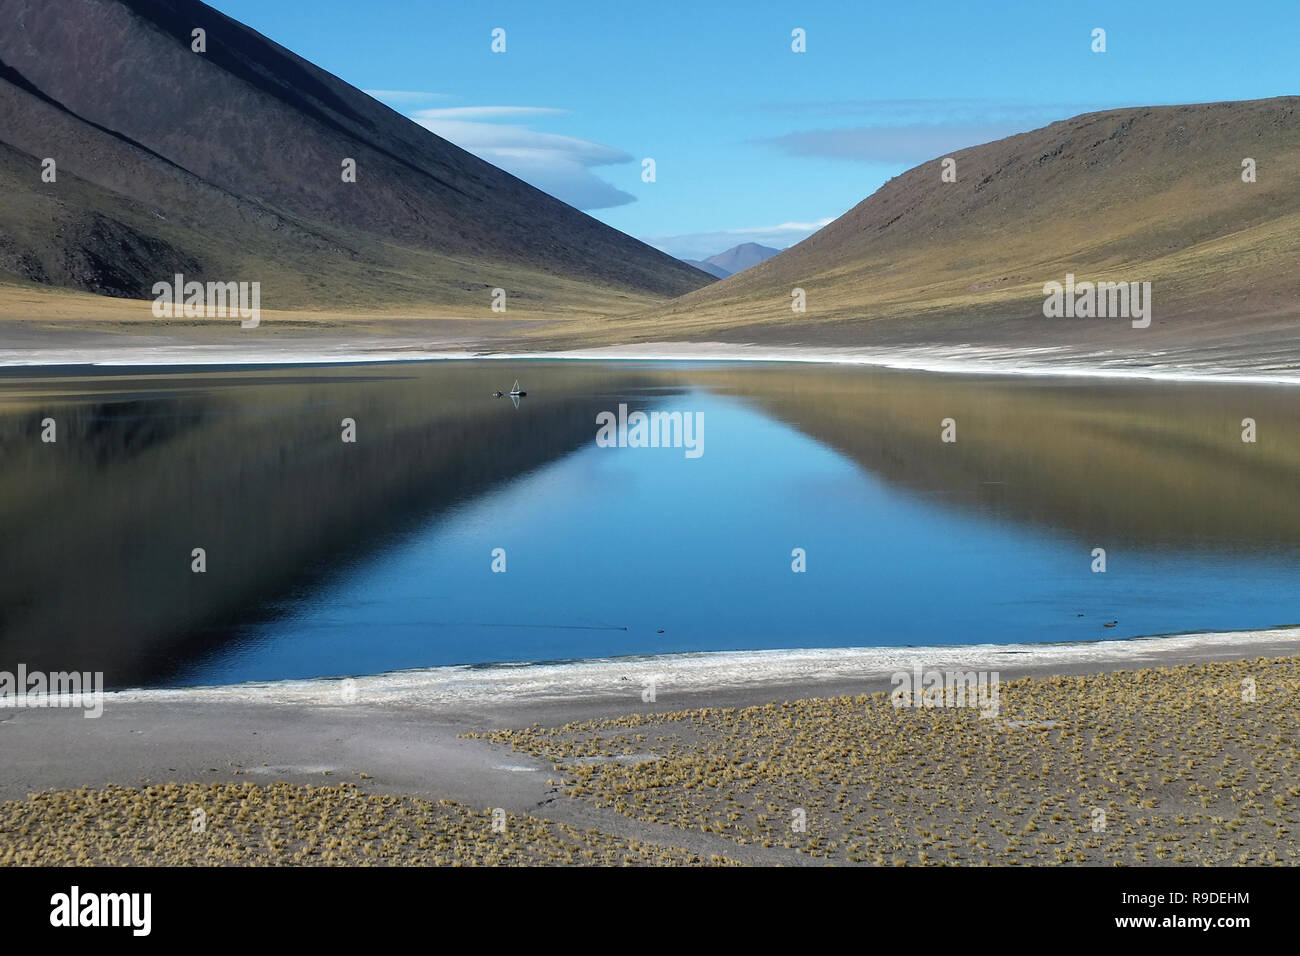 Miniques Altiplanic Lagoon in the Atacama desert. Blue refections of the sky in the water as well as the mountains around it. Chile, South America. - Stock Image